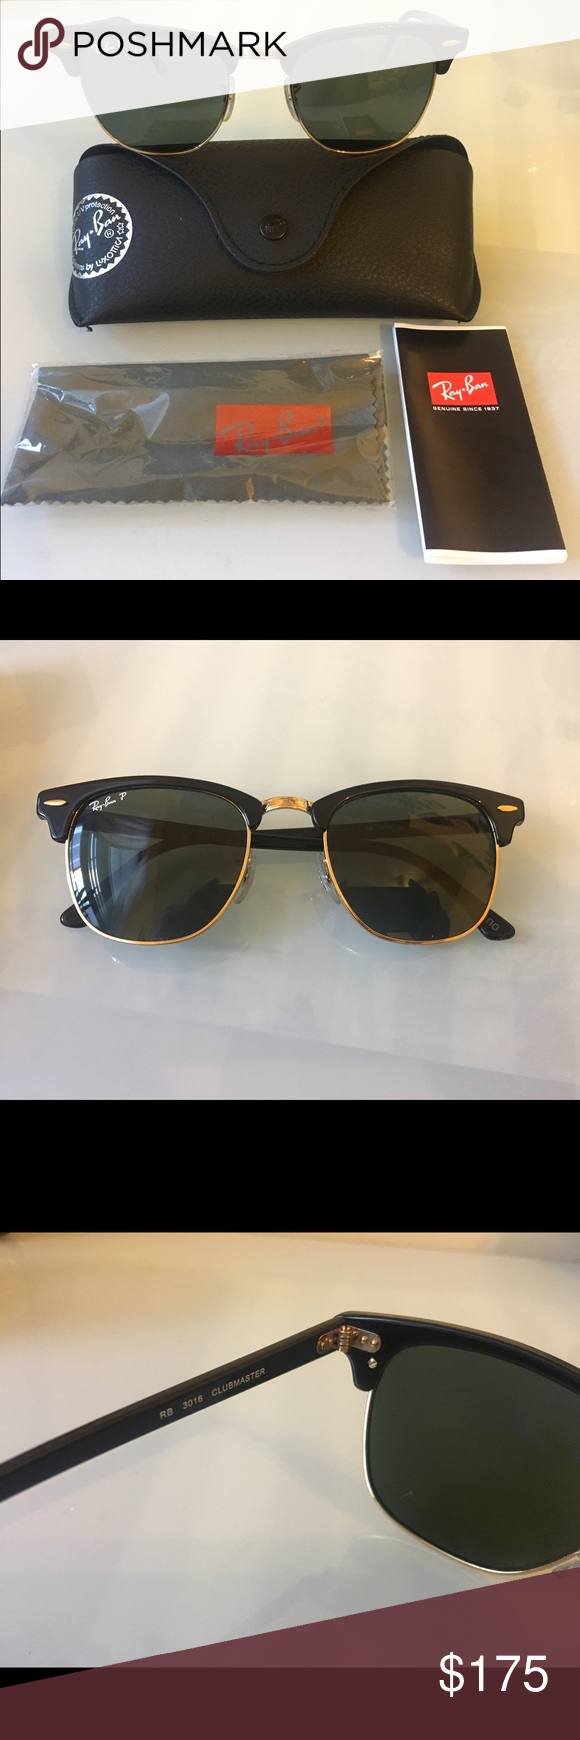 clubmaster style sunglasses polarized  Original Ray Ban Polarized Clubmaster Sunglasses NWT